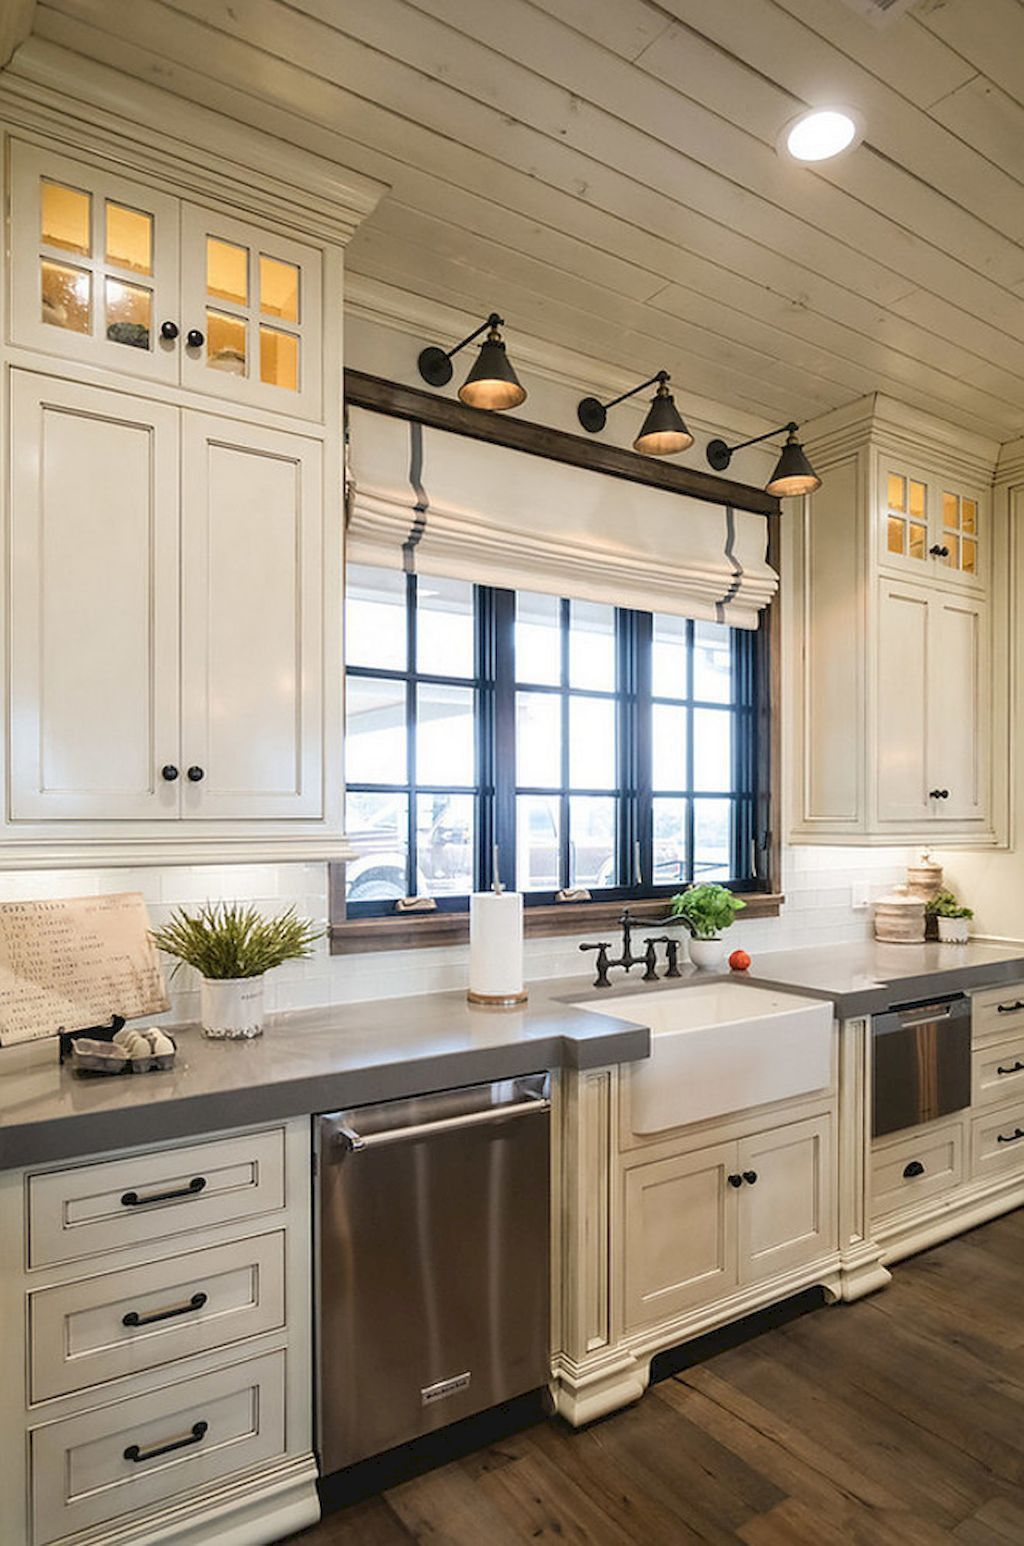 Best Of White Kitchen Cabinets Cabinets The Incredible And Stun In 2020 Modern Farmhouse Kitchens Farmhouse Kitchen Decor Home Decor Kitchen